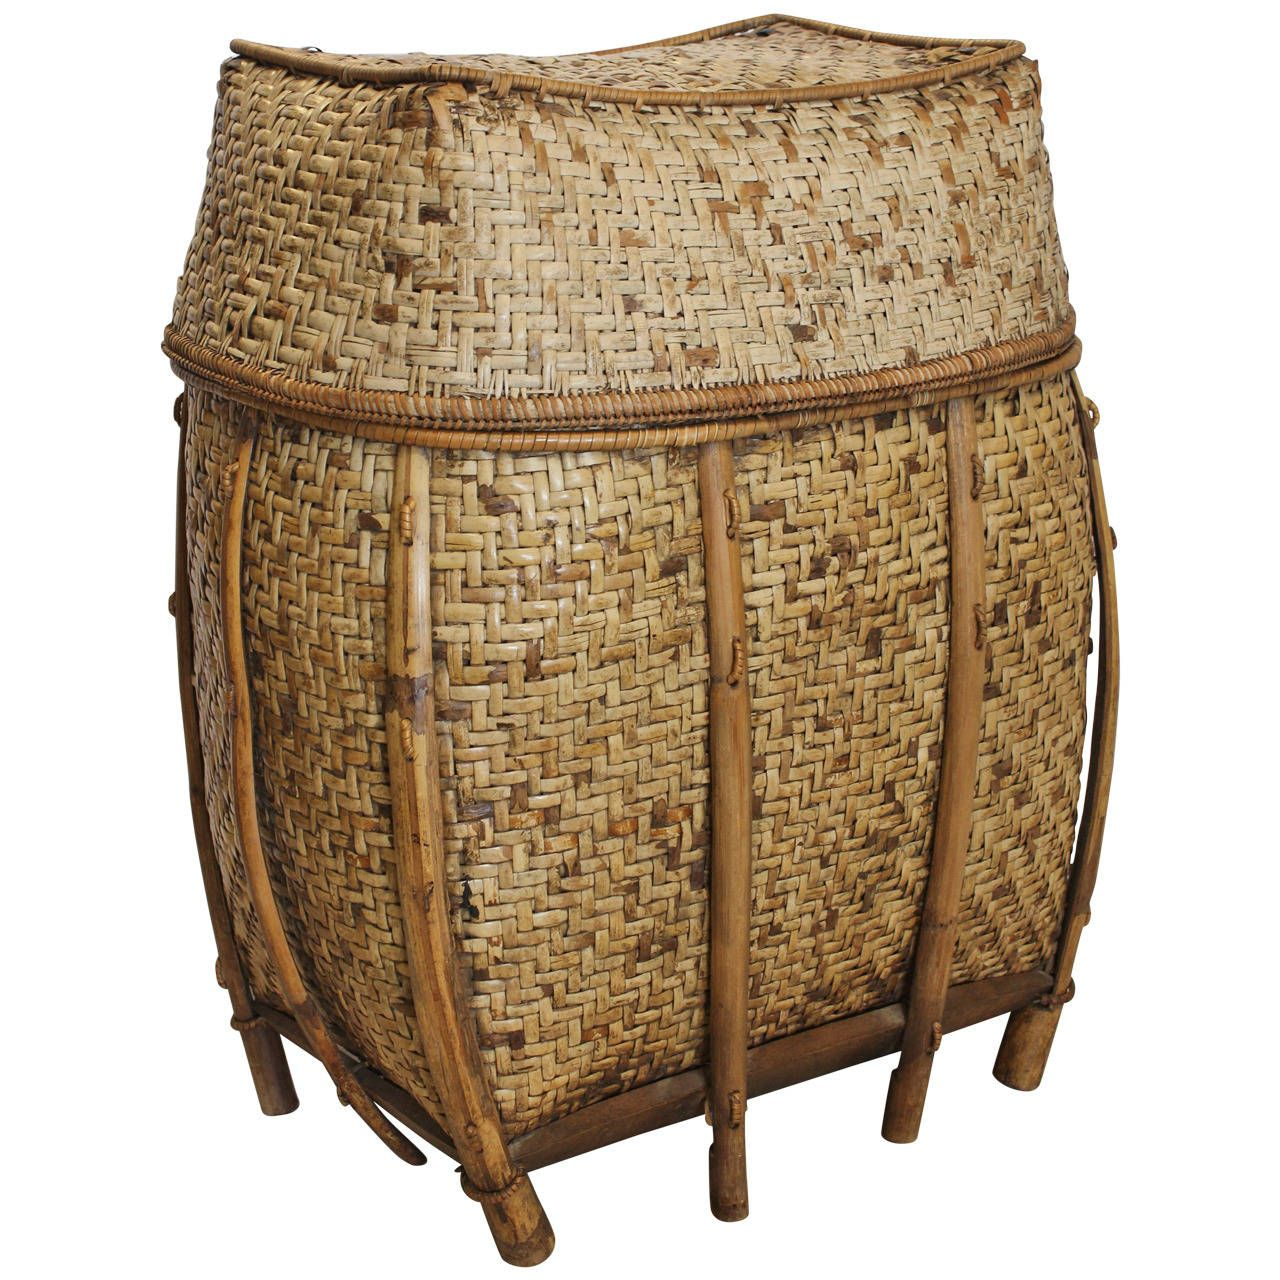 Large Decorative Asian Woven Basket   From a unique collection of antique and modern baskets at https://www.1stdibs.com/furniture/more-furniture-collectibles/baskets/